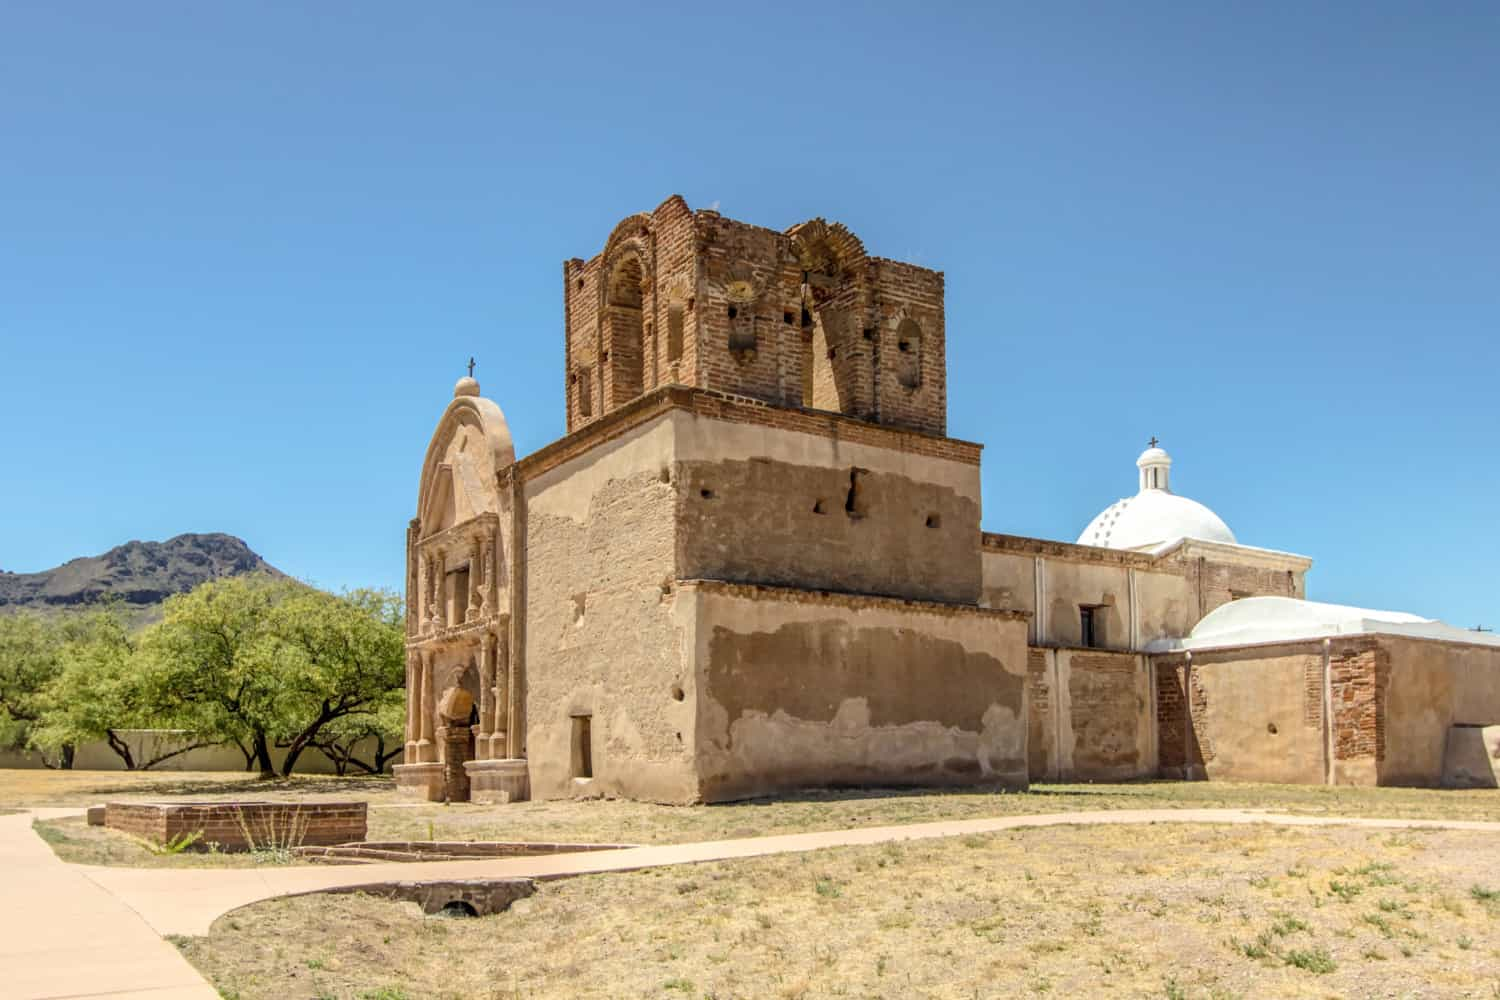 Exterior of a Spanish-style mission at Tumacacori National Historic Park in Arizona